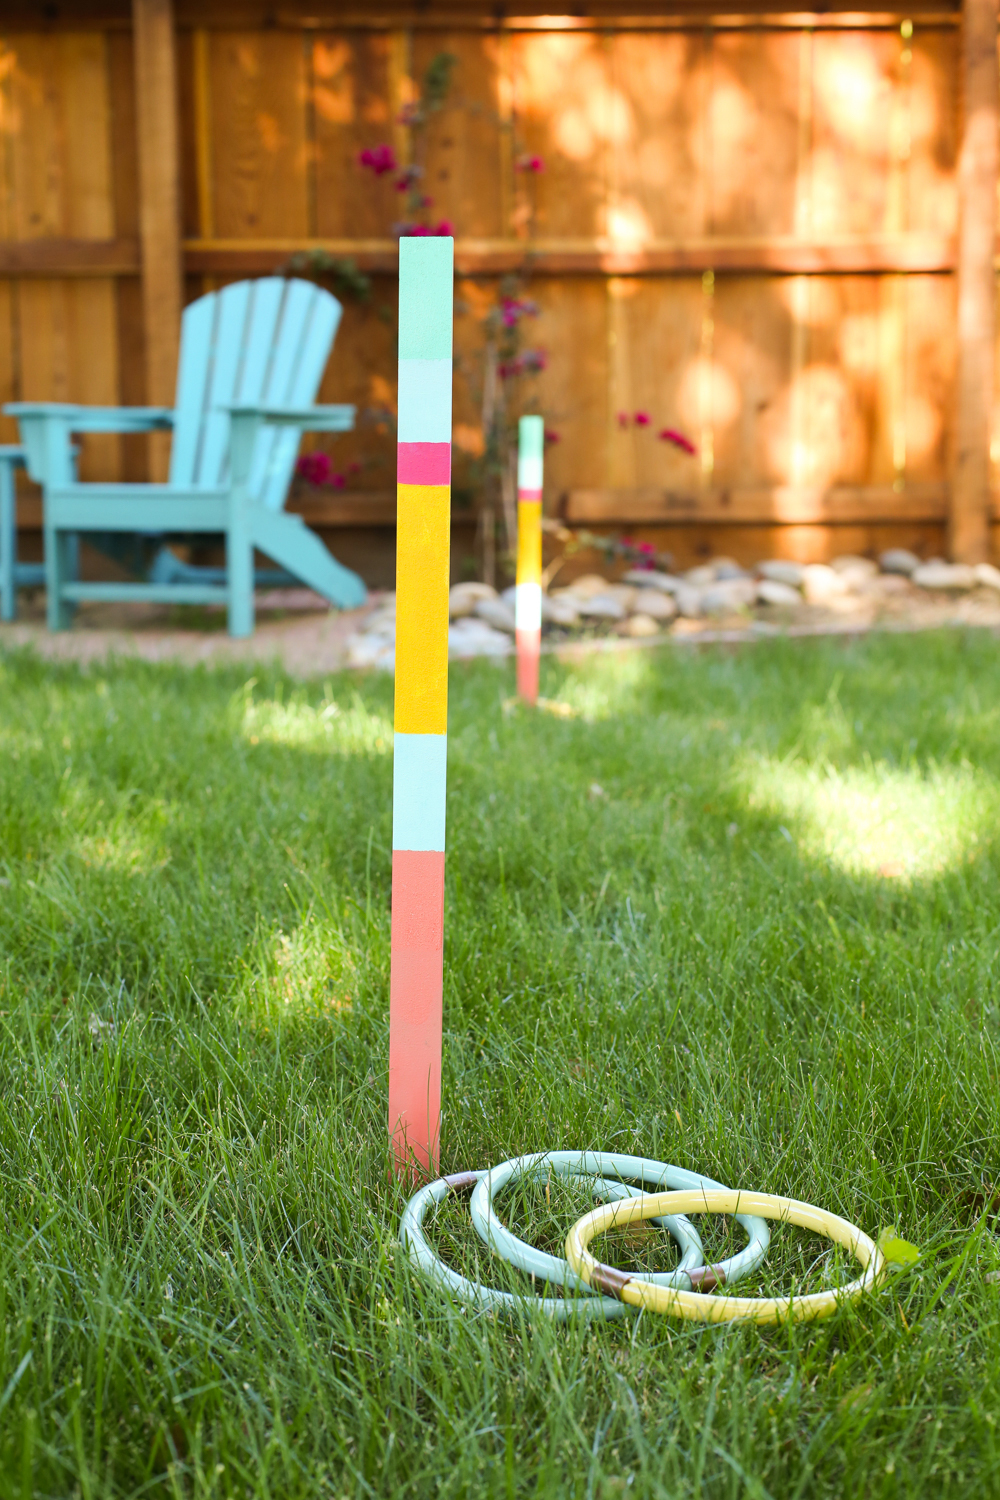 13 Fun And Festive Easter Games And Activities For Adults intended for Backyard Game Ideas For Adults